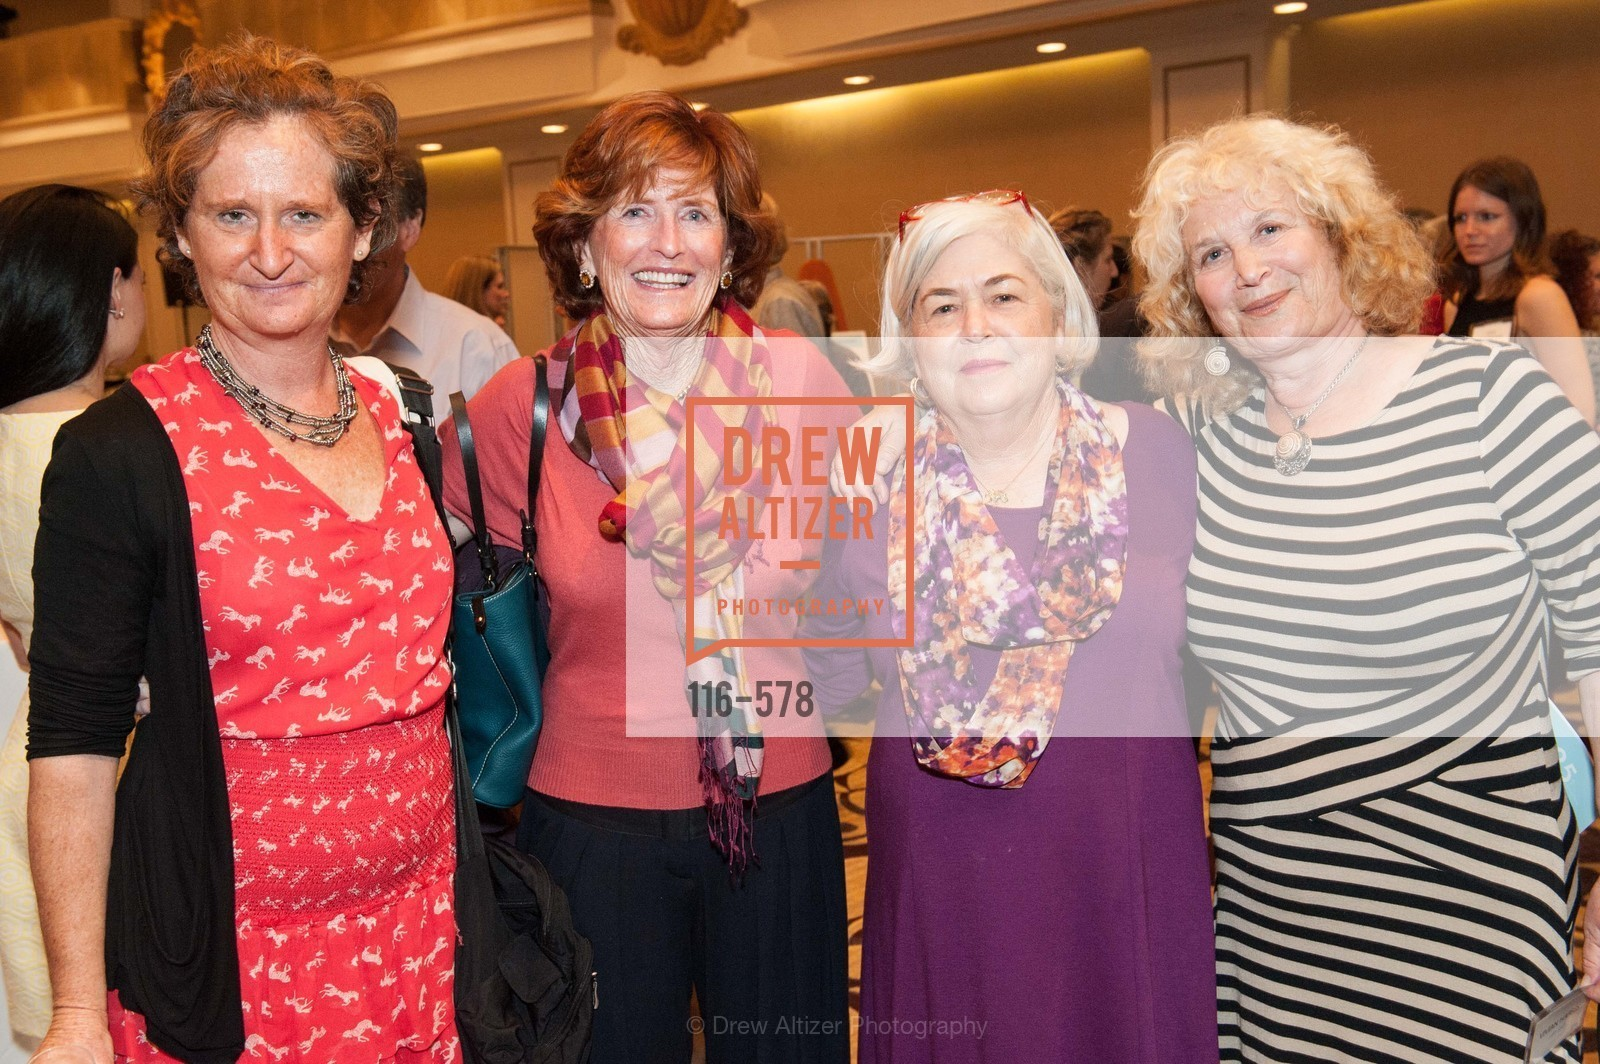 Theresa Ryan, Lee Heagarty, Molly Wilkinson, Vivian Harris, HOMELESS PRENATAL Annual Luncheon 2014, US, October 1st, 2014,Drew Altizer, Drew Altizer Photography, full-service agency, private events, San Francisco photographer, photographer california